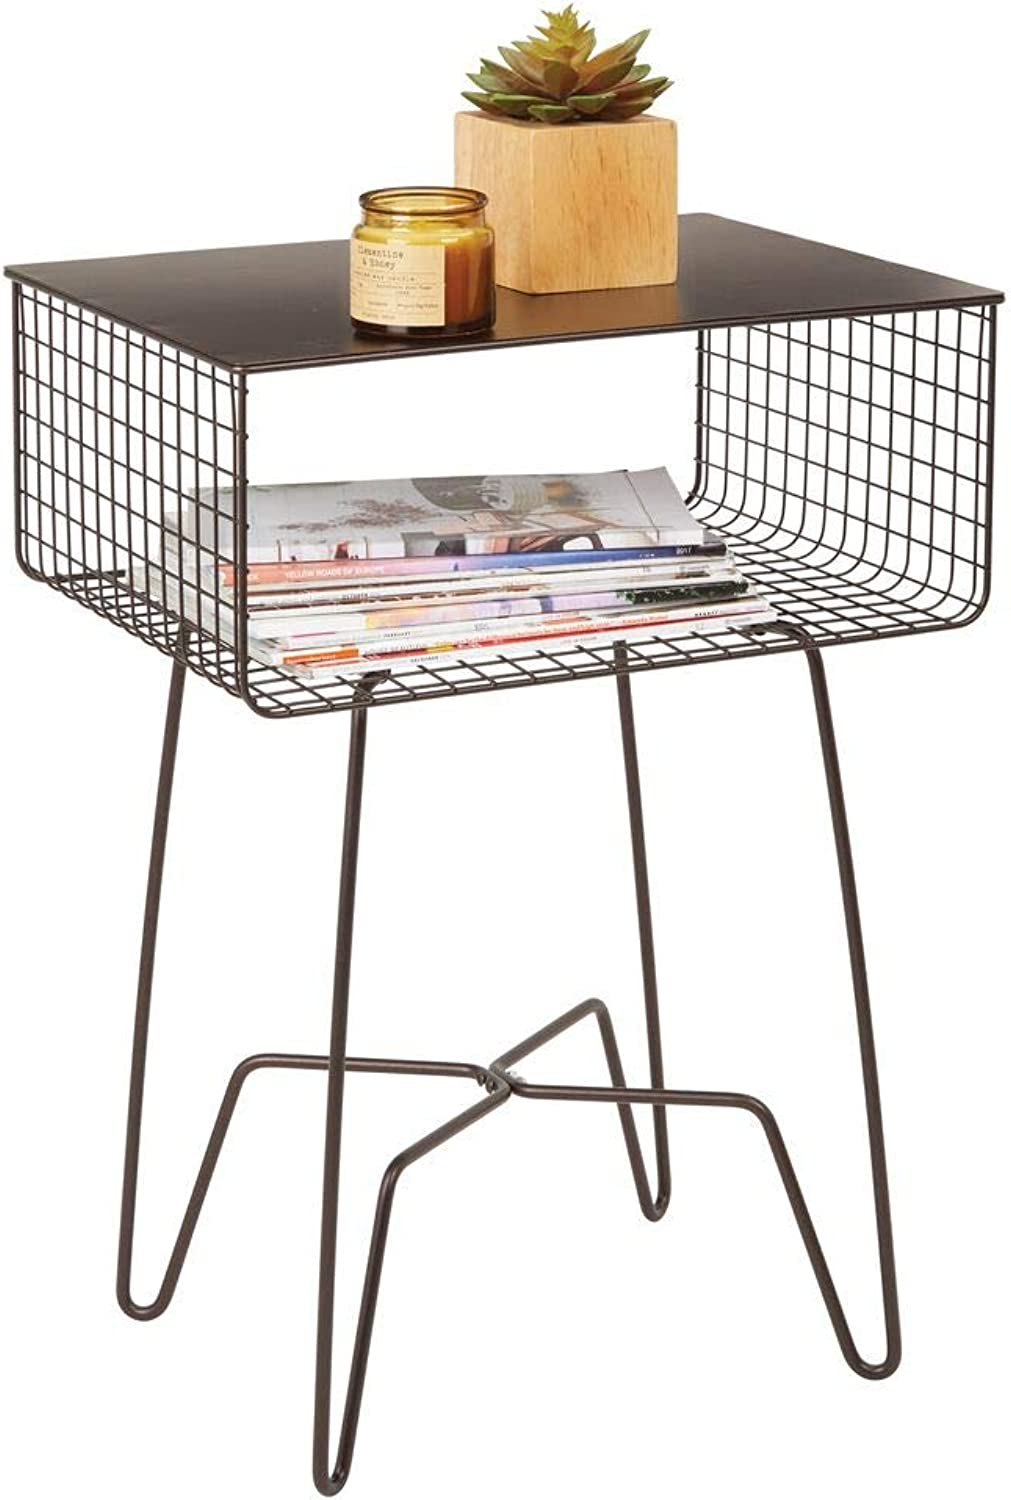 MDesign Modern Farmhouse Side End Table - Solid Metal Design, Open Storage Shelf Basket, Hairpin Legs - Sturdy Vintage, Rustic, Industrial Home Decor Accent Furniture for Living Room, Bedroom - Bronze